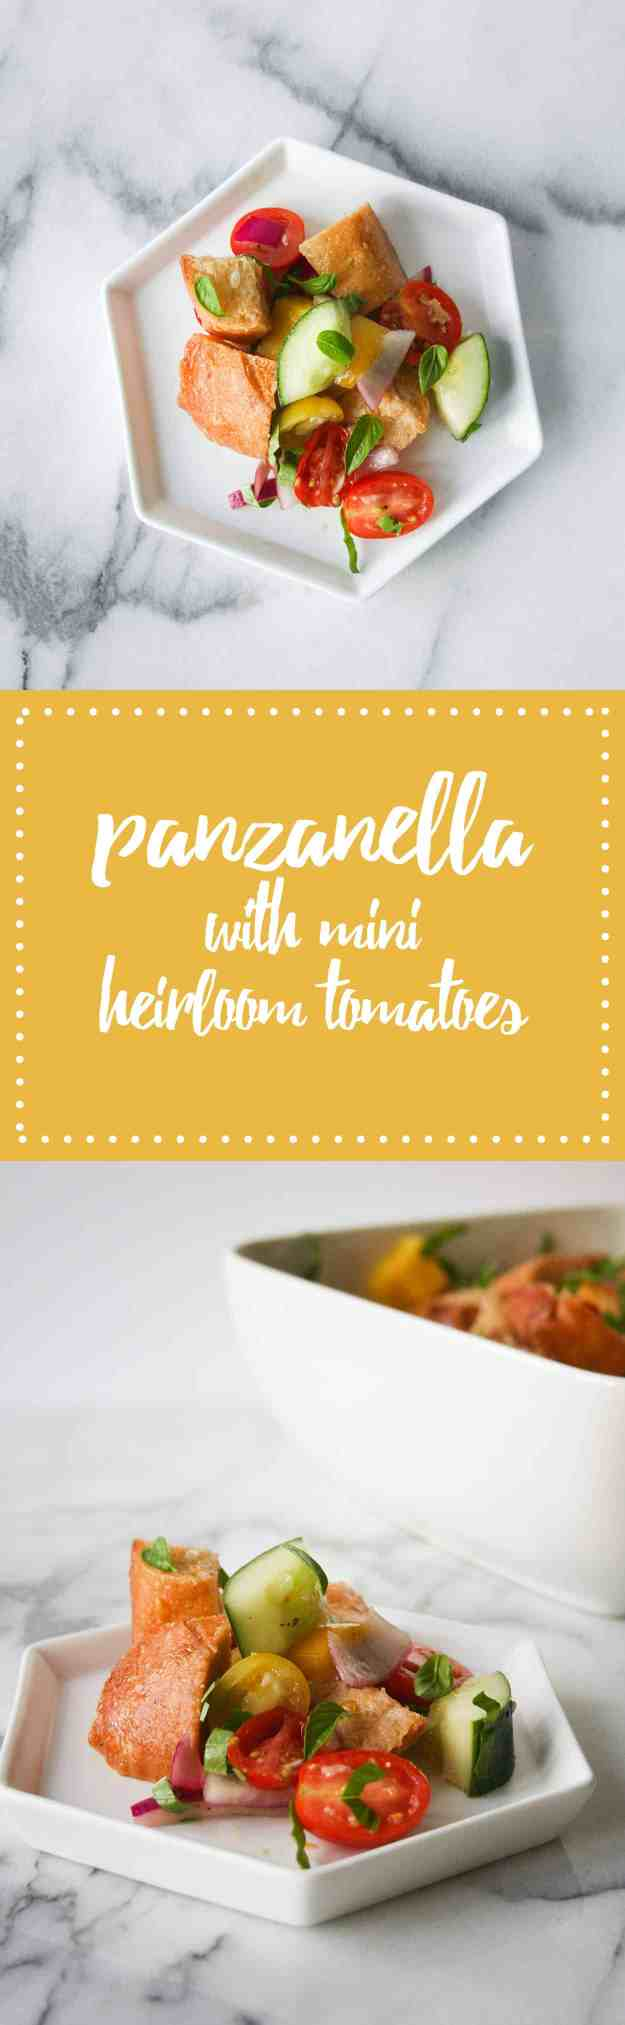 Panzanella with Mini Heirloom Tomatoes - makes this before the summer is over! | hungrybynature.com